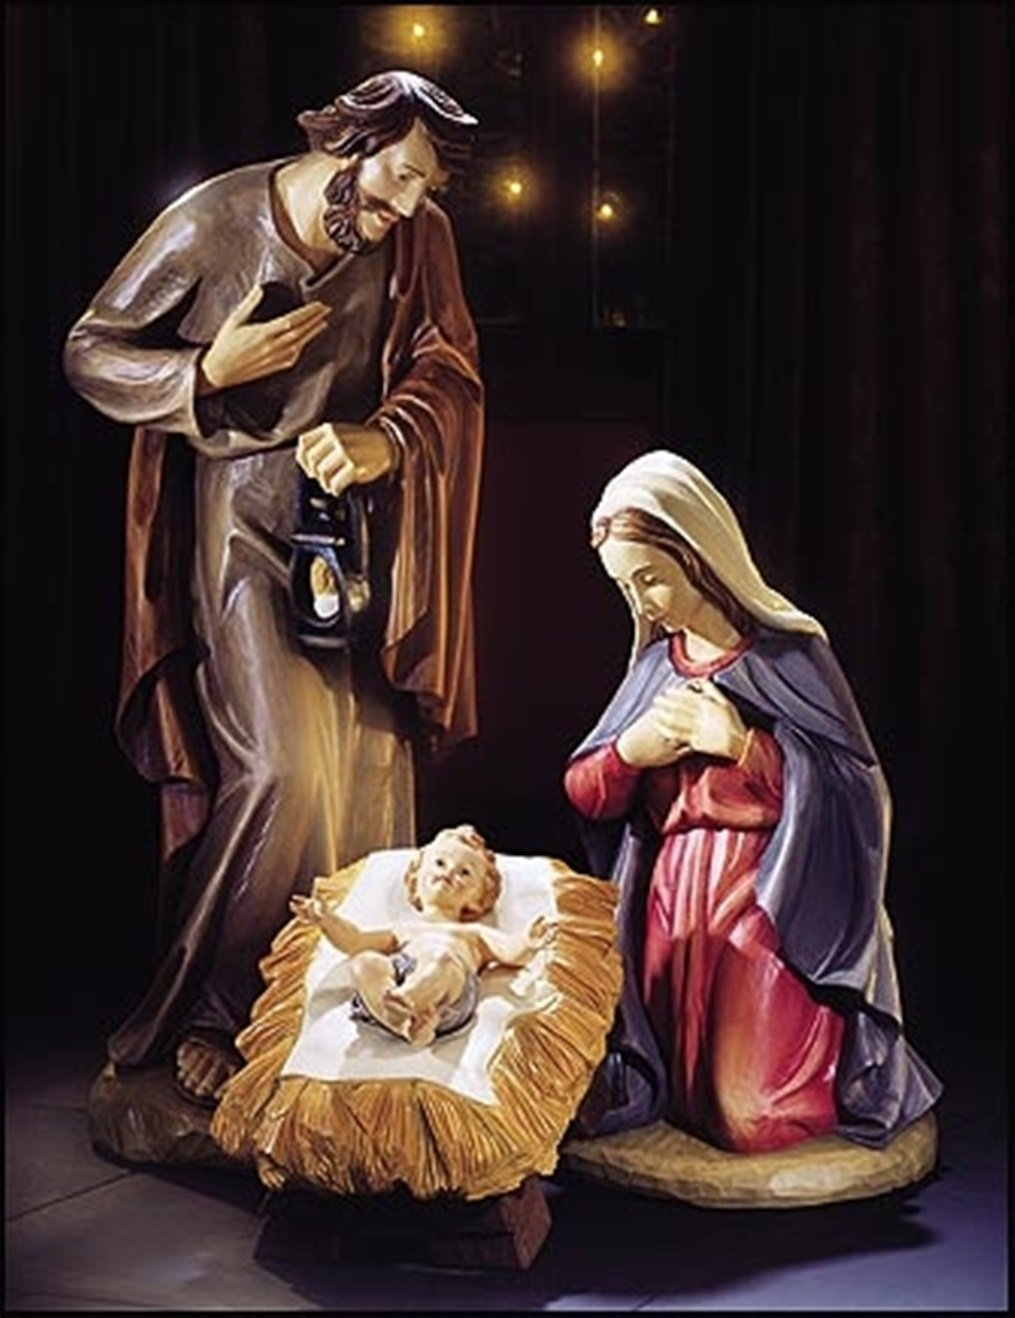 Joseph Mary and Baby Jesus 3 Piece Nativity Set 40'' Statues for Christmas Display